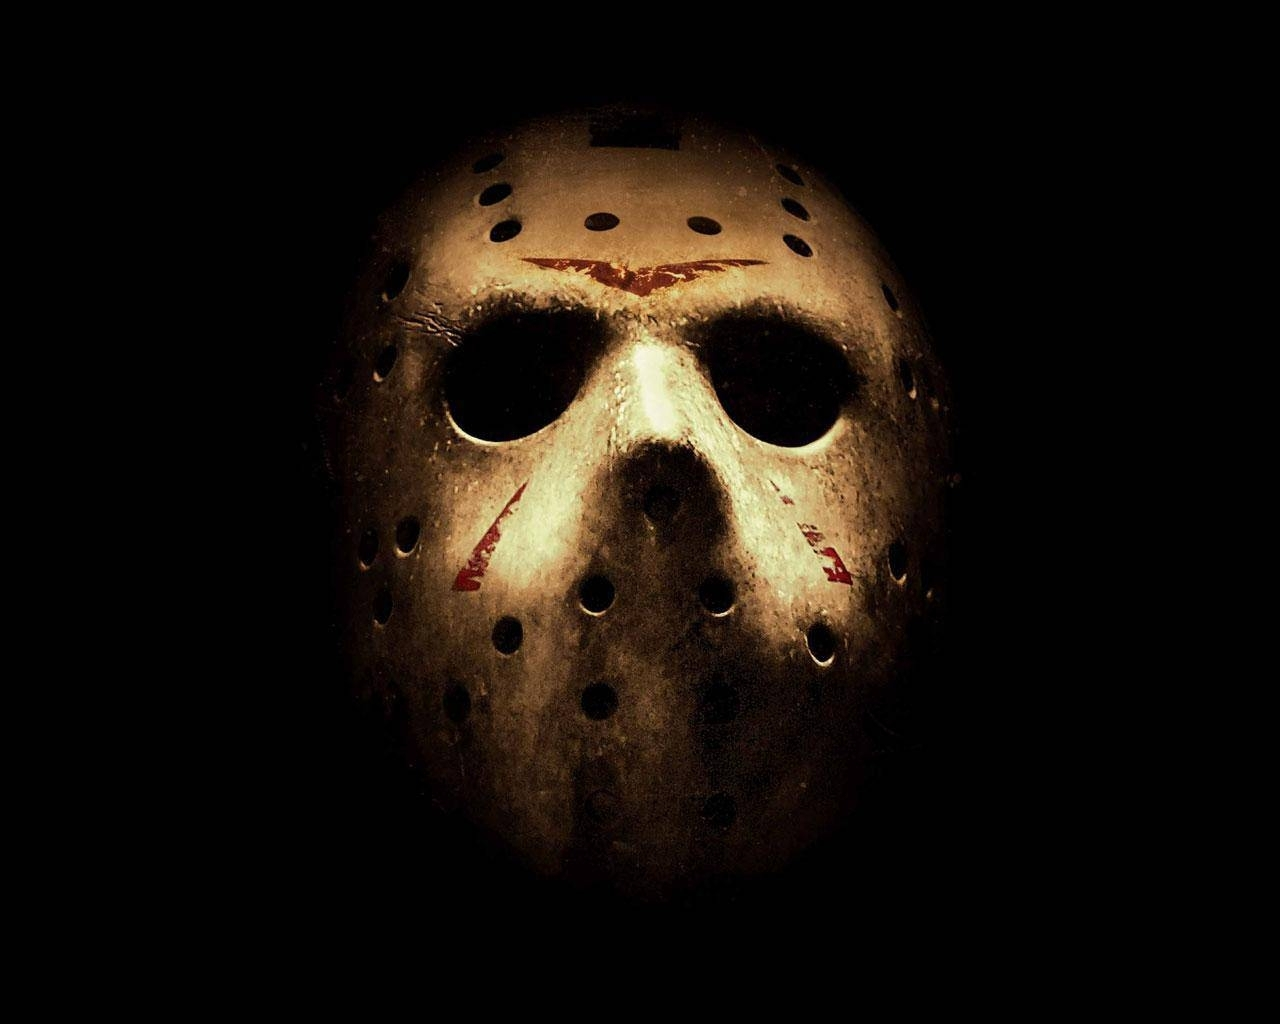 1080p: jason voorhees - wallpaper (friday the 13th)